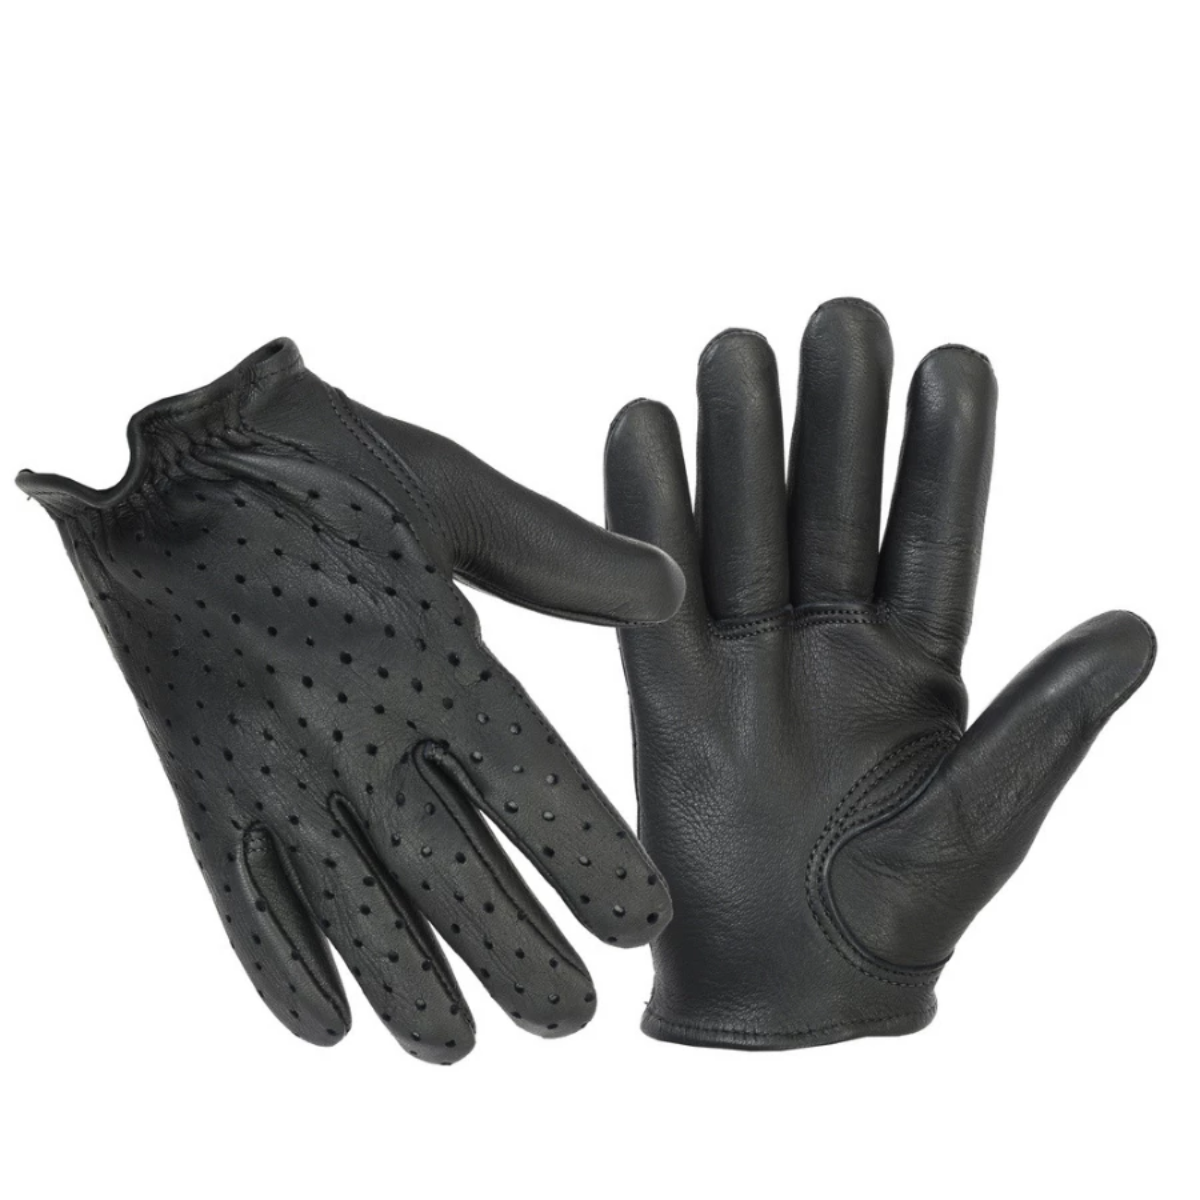 Daniel Smart Perforated Police Style Gloves